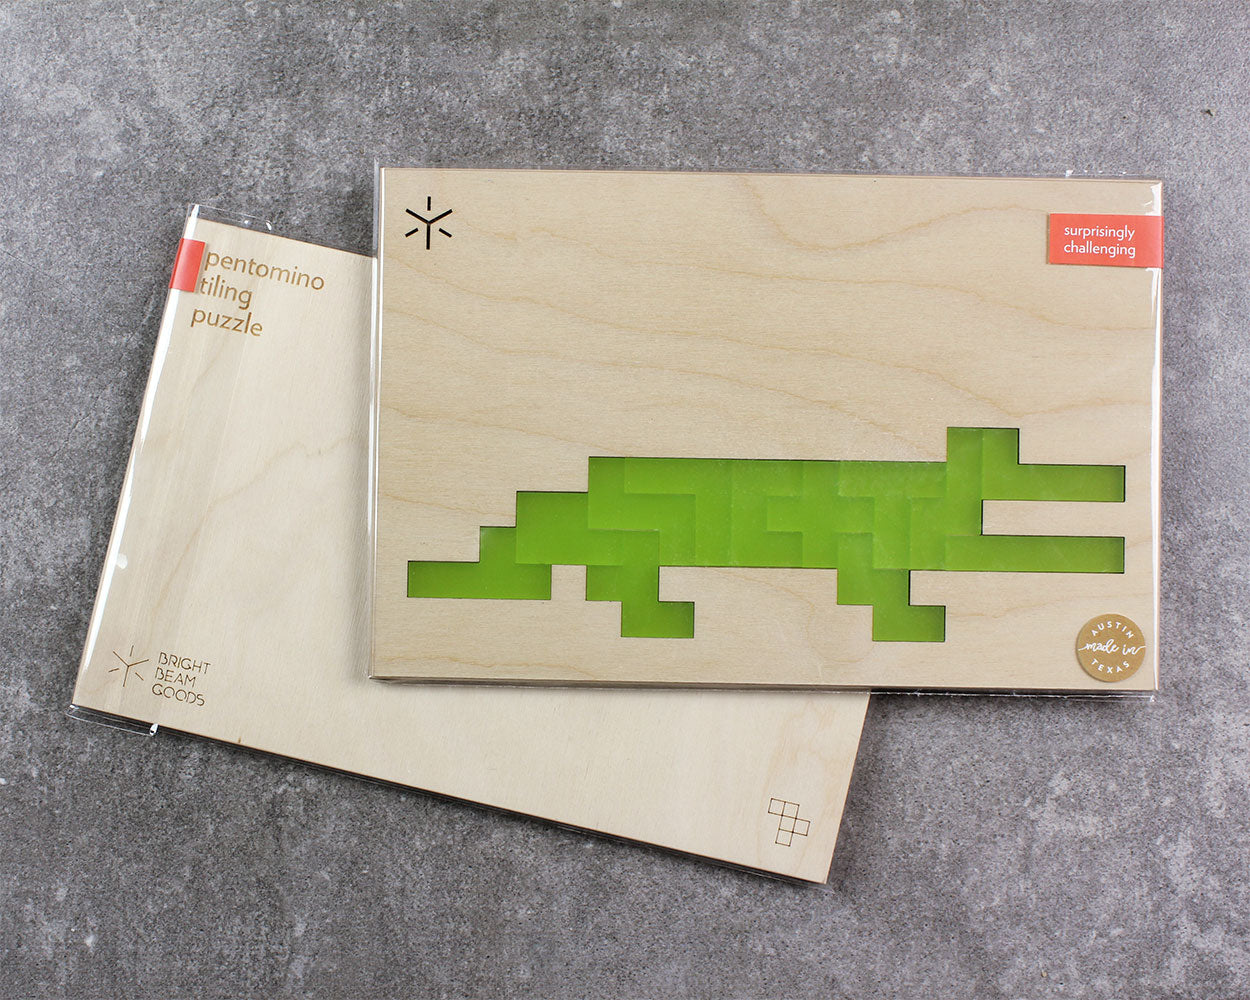 Animal Pentomino Puzzle | Crocodile Puzzle Bright Beam Goods - Stash Co